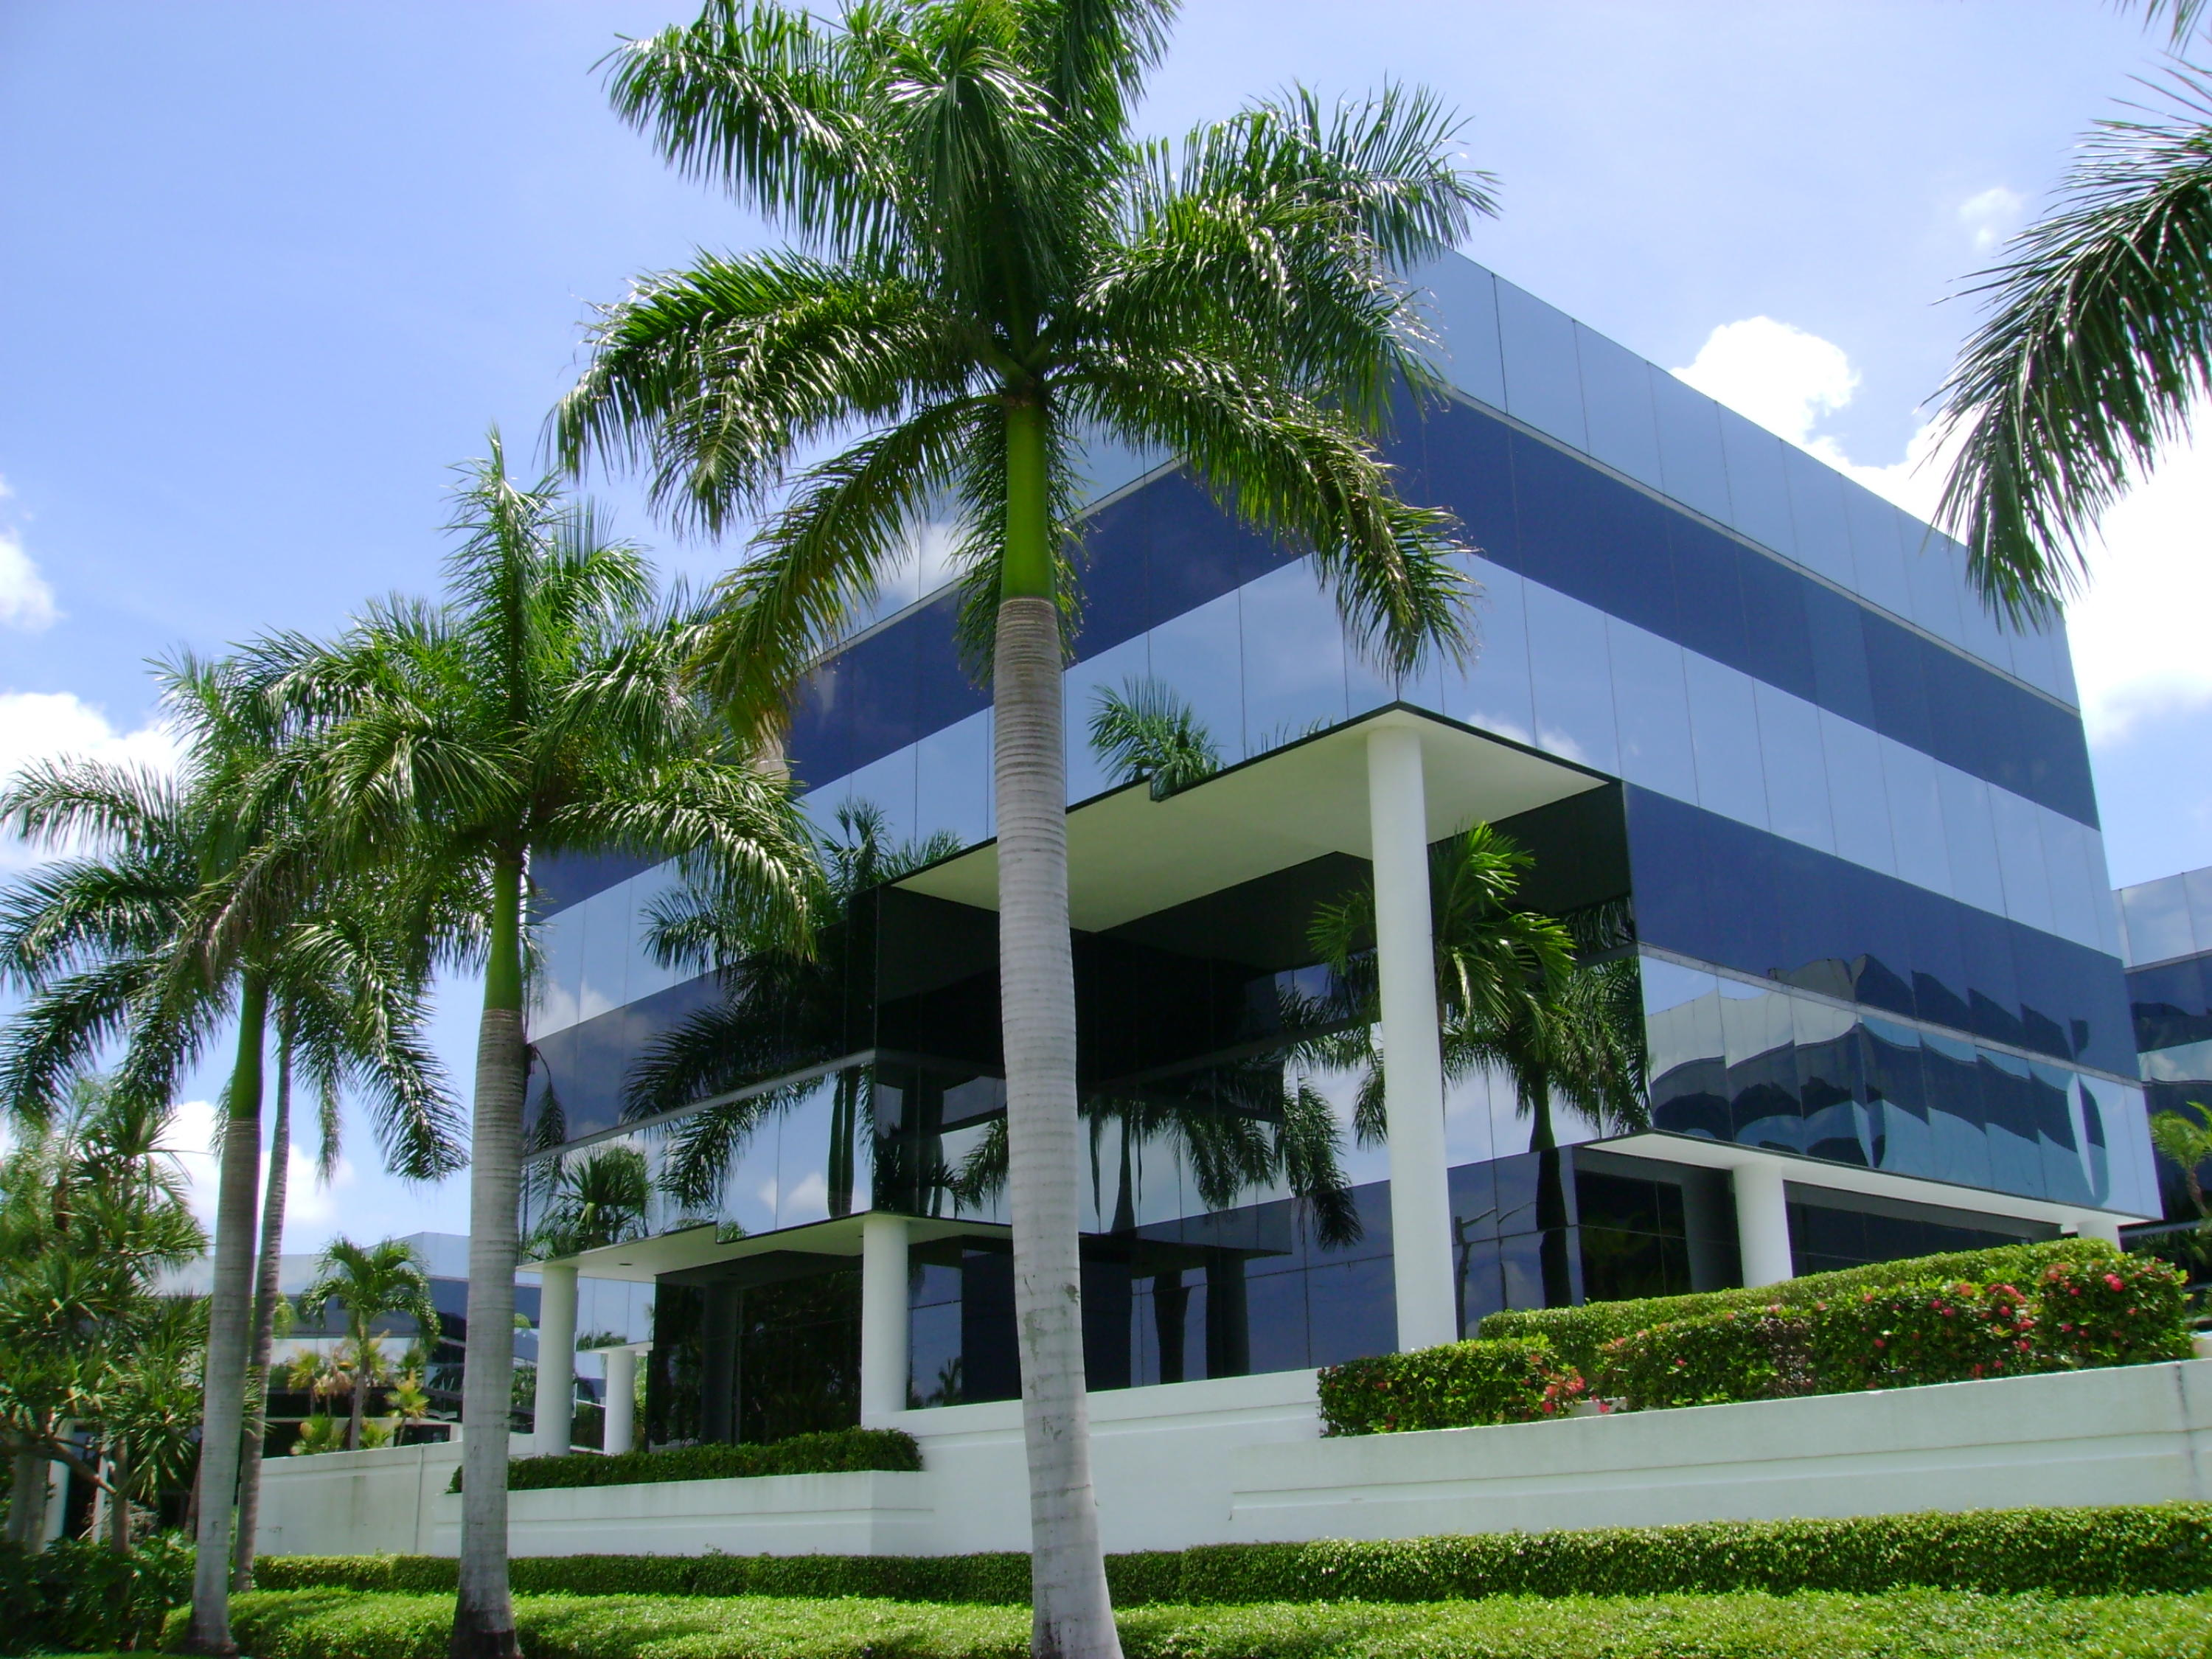 4800 N Federal Unit 111b, Boca Raton, Florida 33431